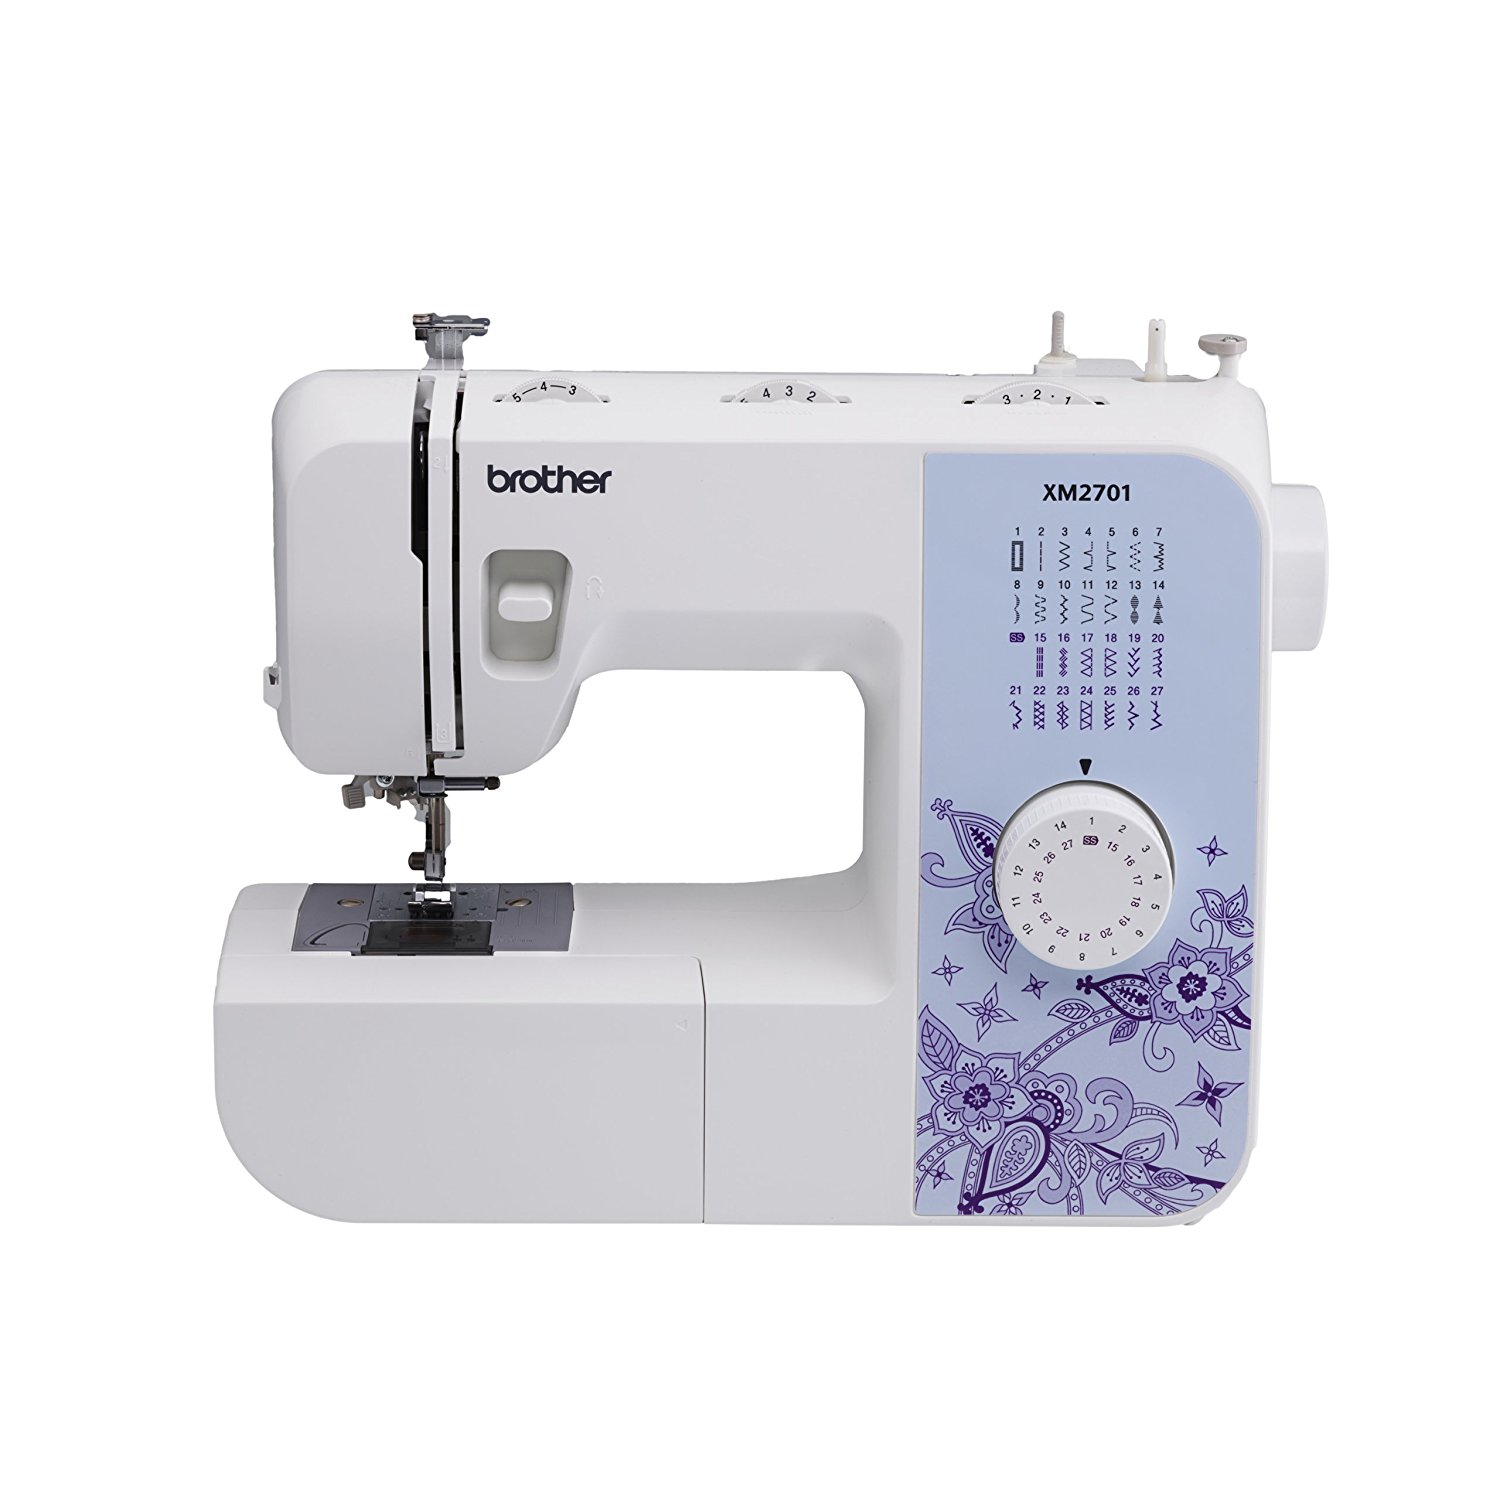 5 Best Sewing Machines Under $100